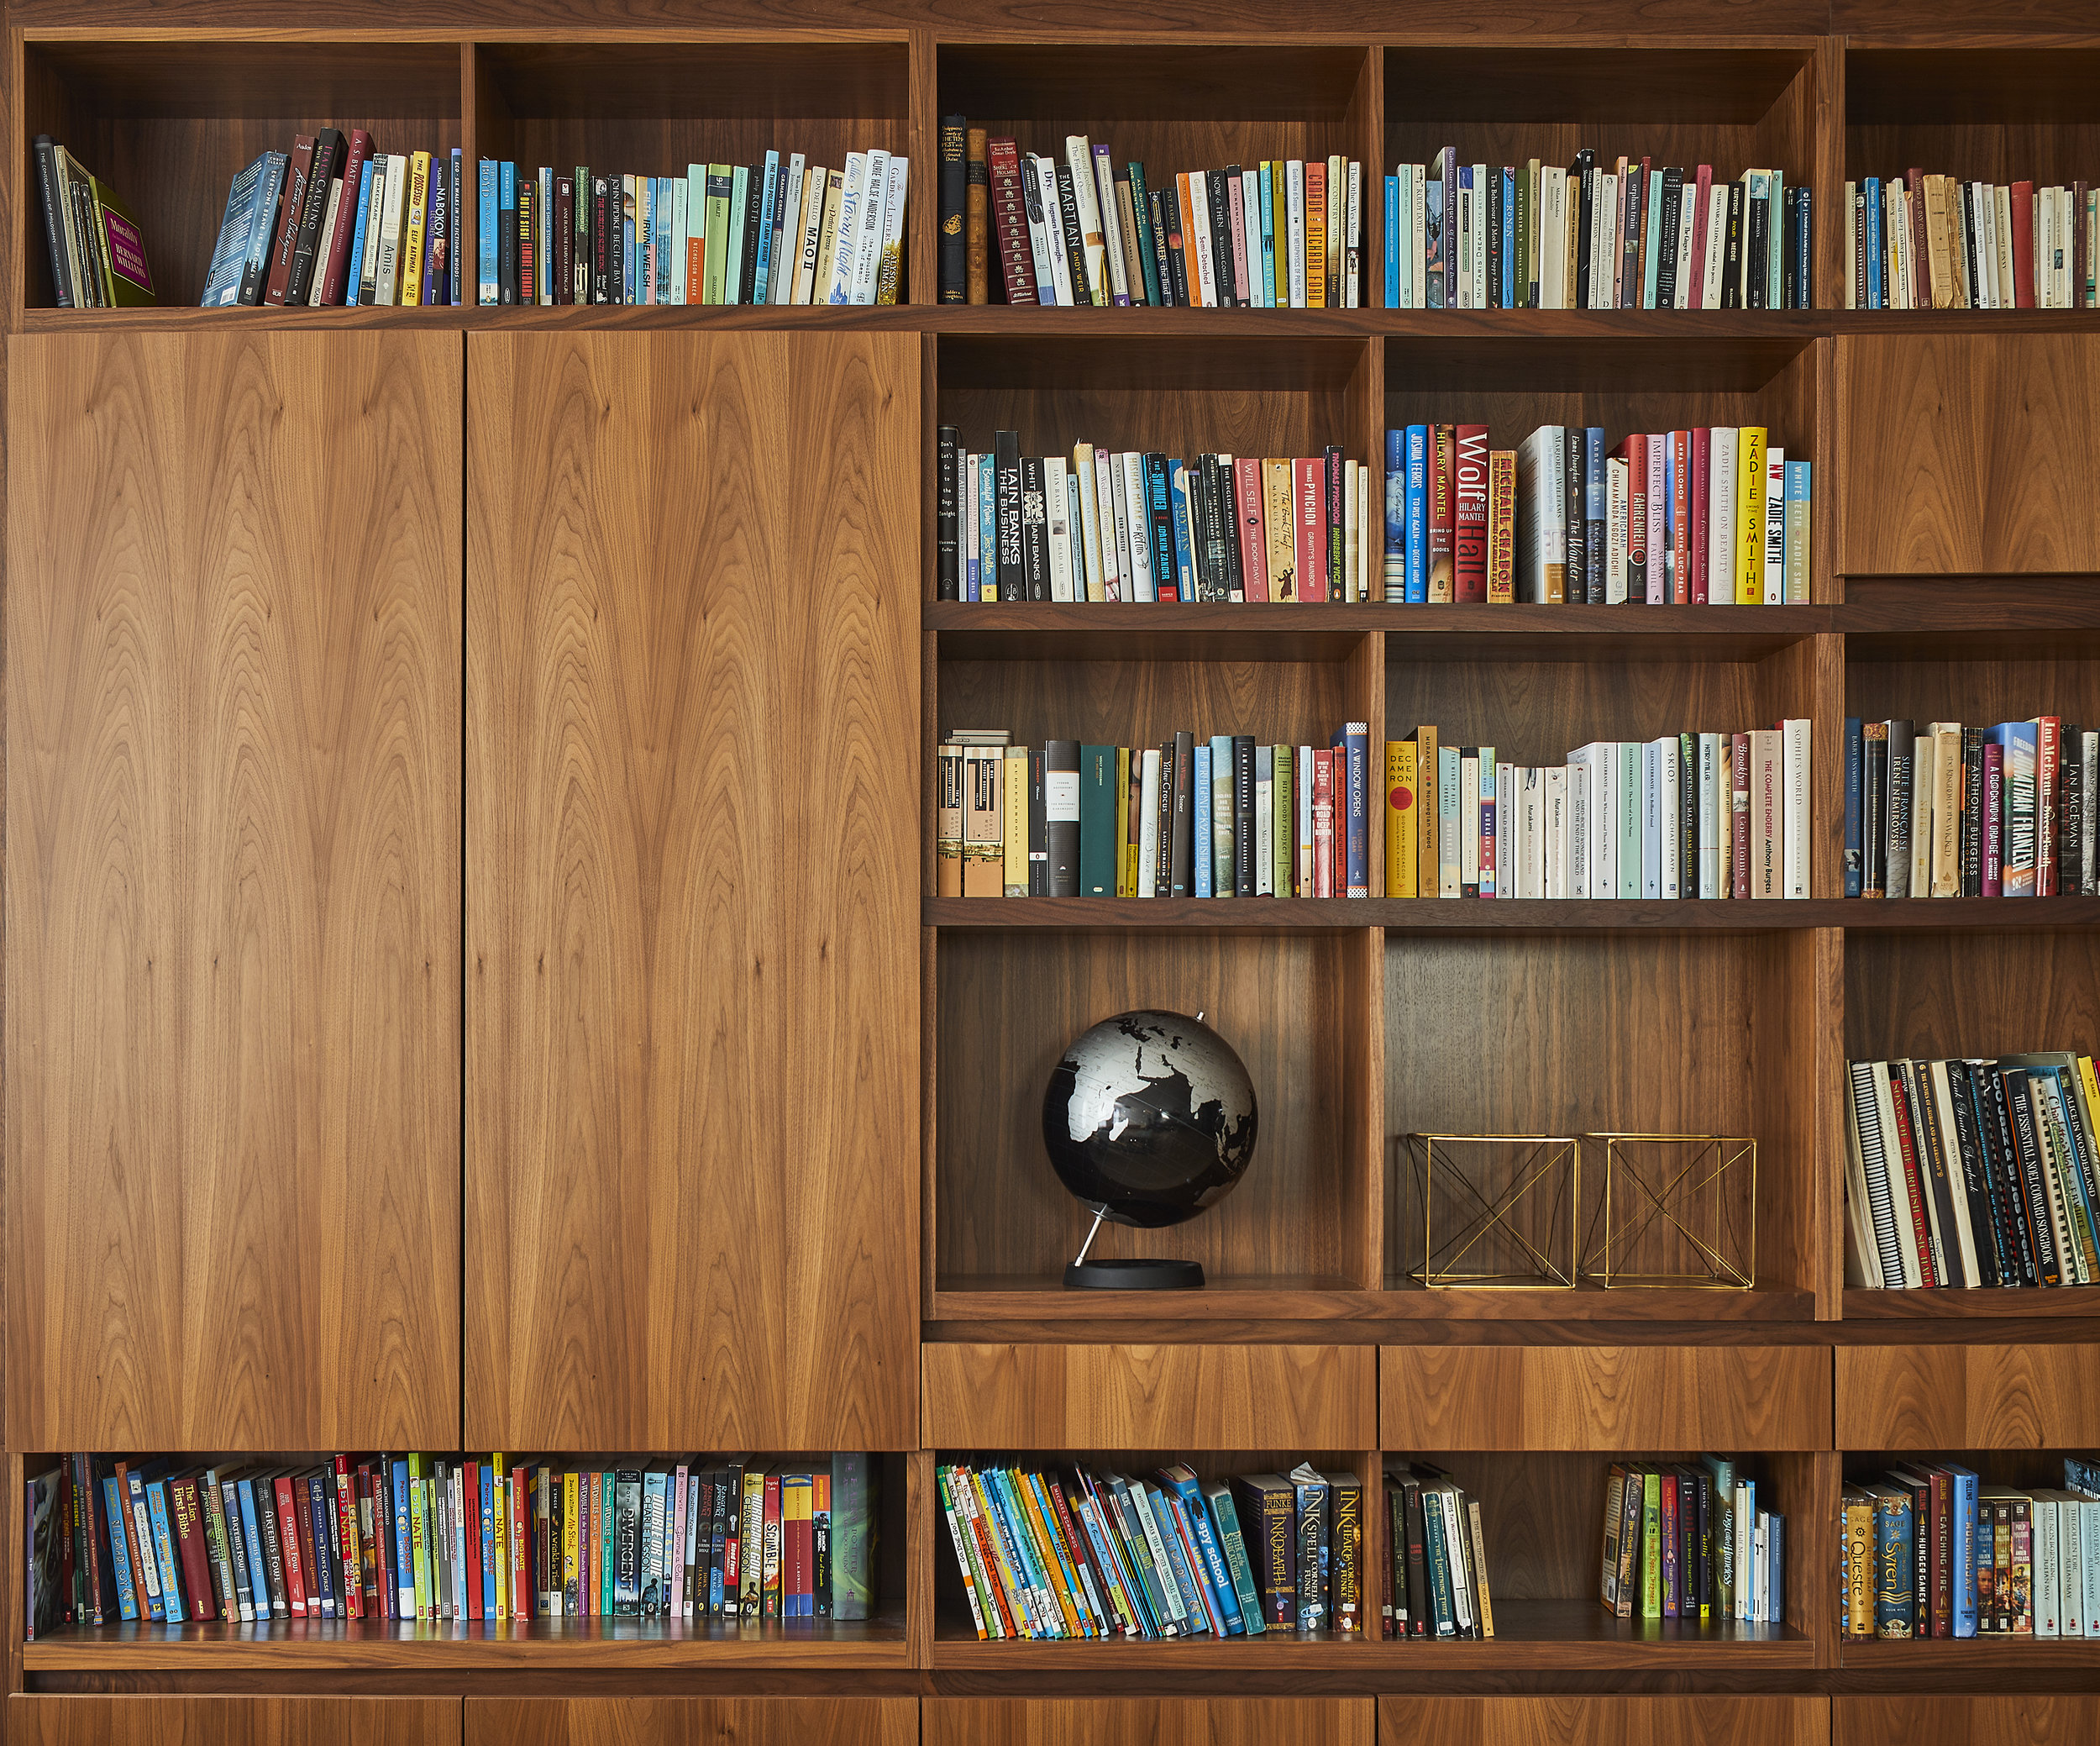 turkel_design_modern_prefab_home_soho_loft__cabinetry_storage_shelving.jpg